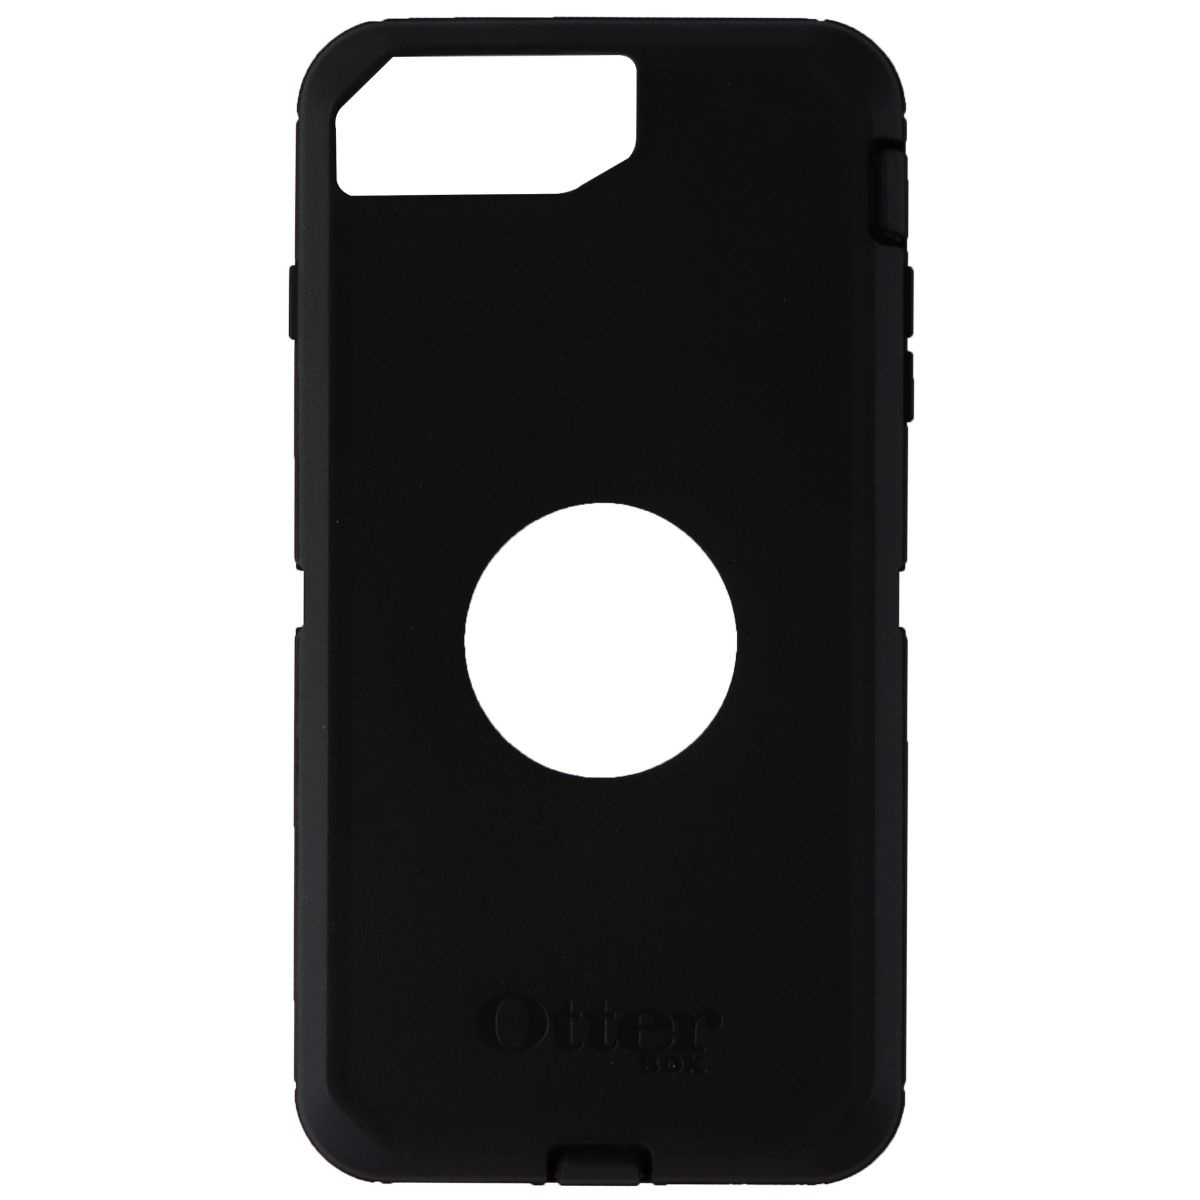 Replacement Outer Shell for iPhone 8 Plus Otterbox + Pop Defender Case - Black